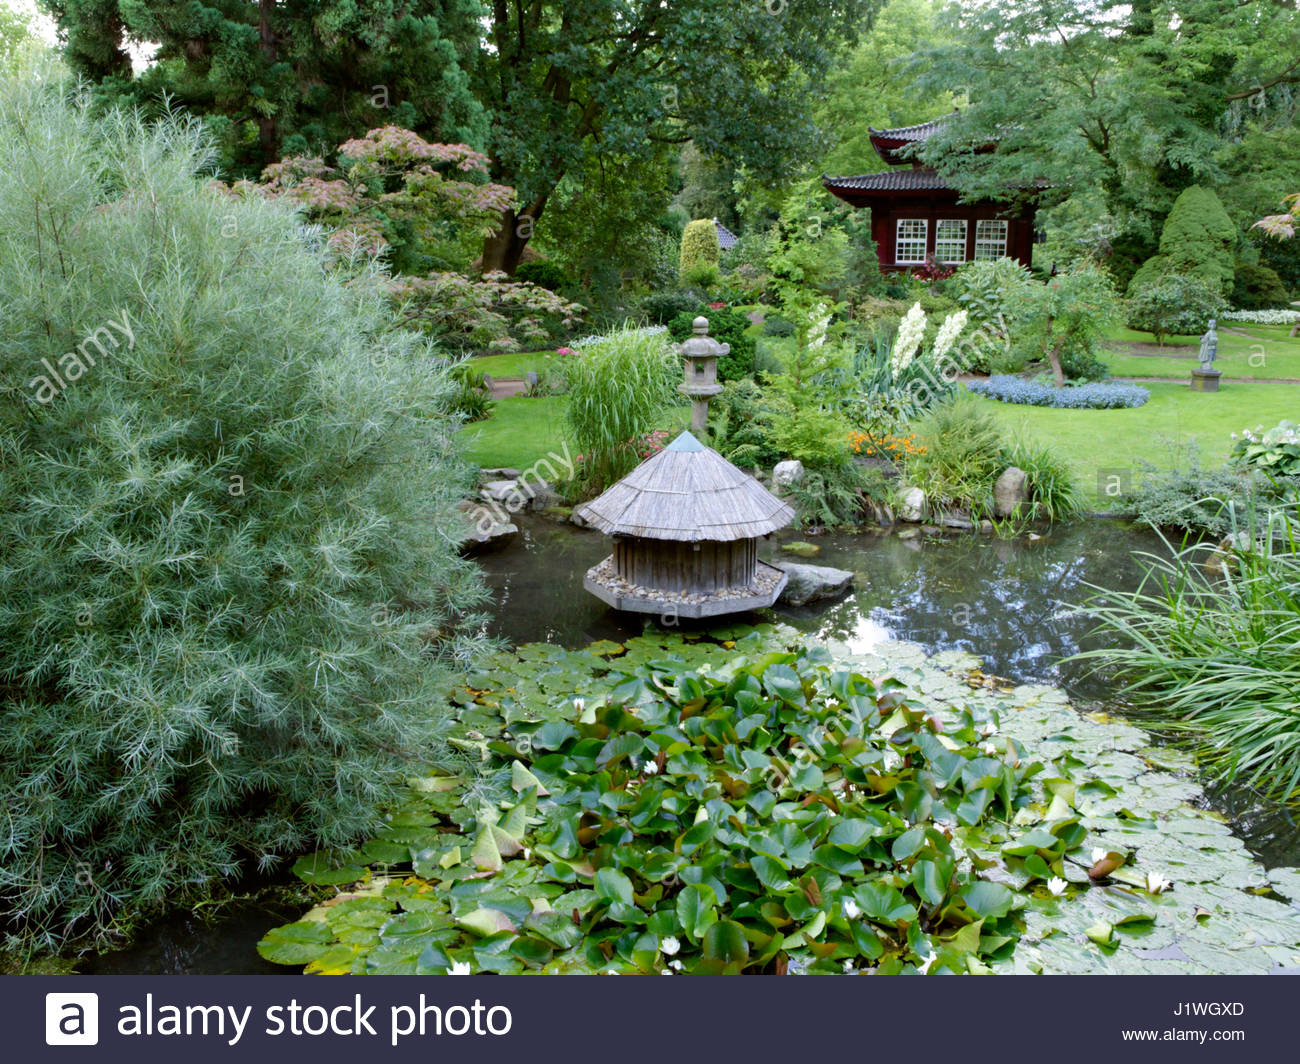 Asiatischer Garten Bayern Japanese Garden Leverkusen Germany Stockfotos And Japanese